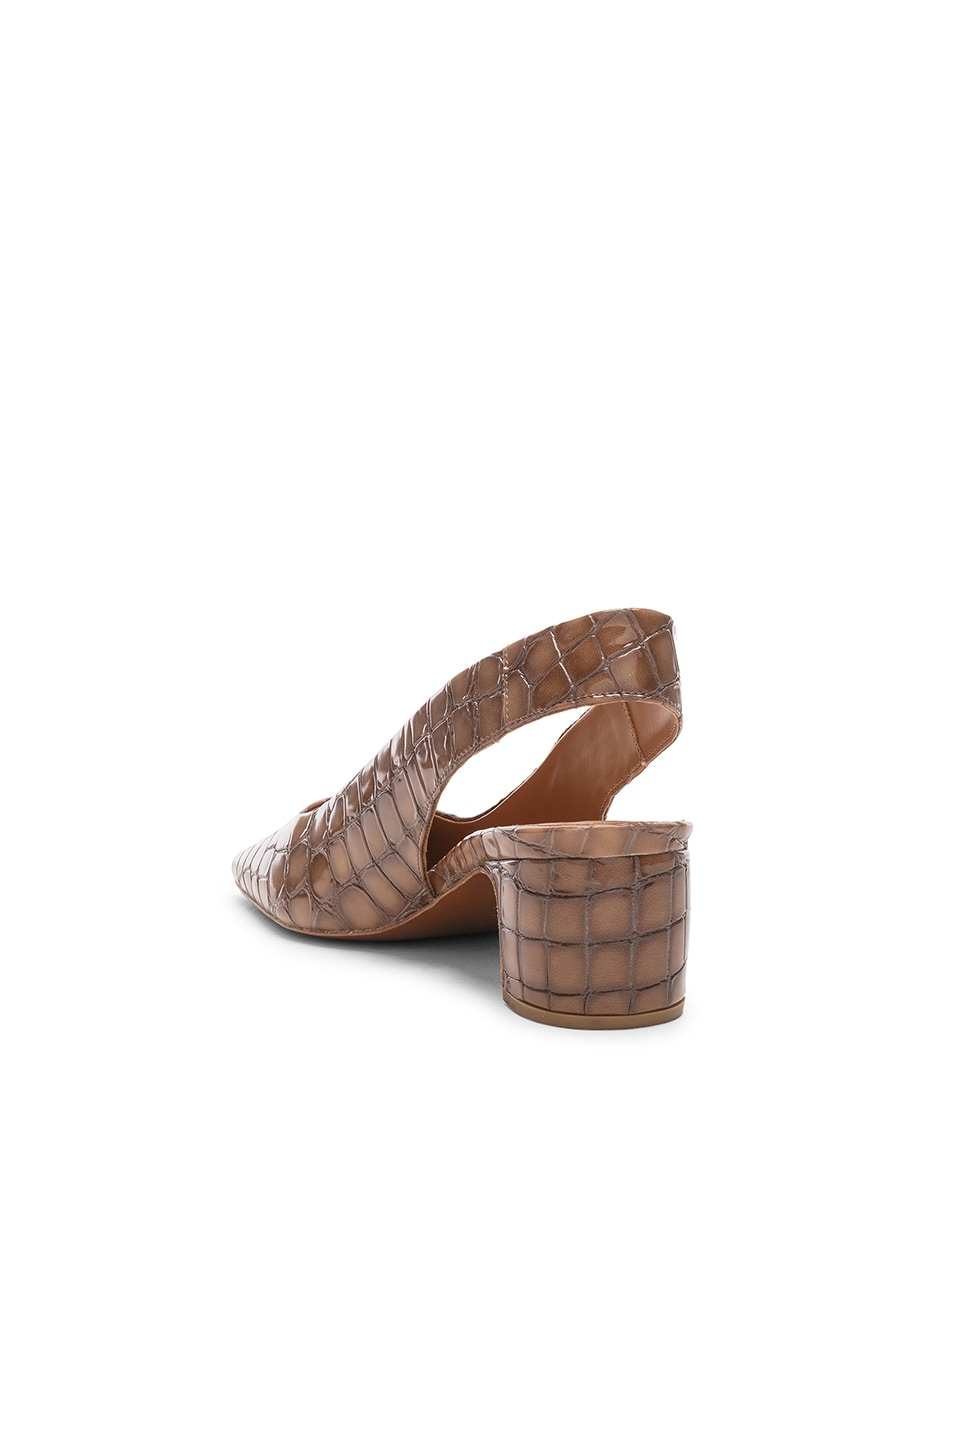 Image 3 of BY FAR Danielle in Brown Croc Embossed Patent